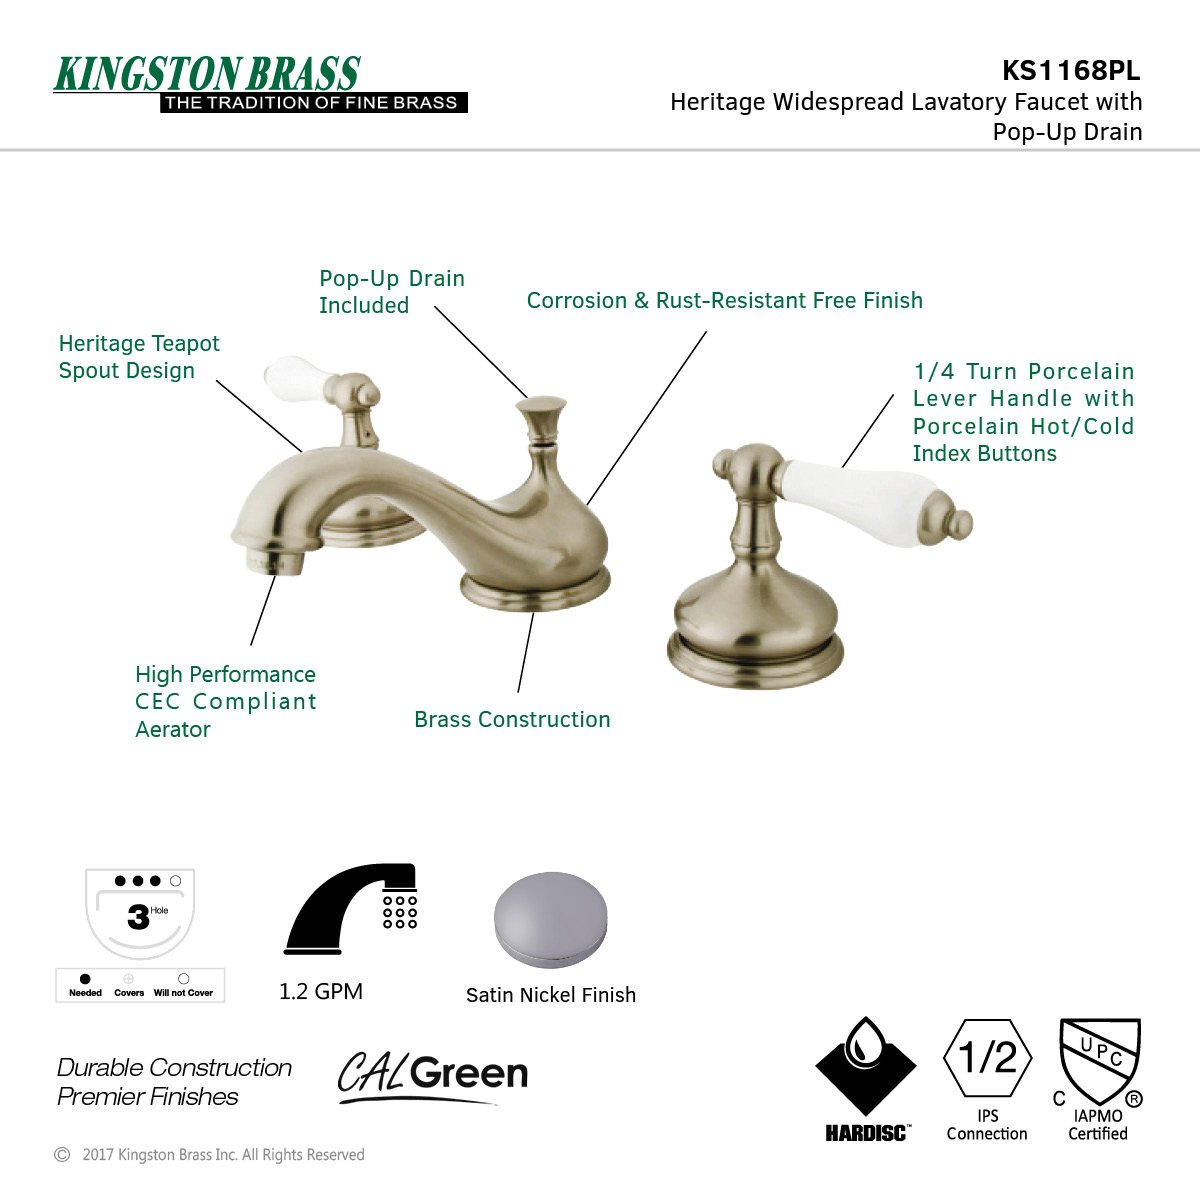 Kingston Brass KS1168PL Heritage Widespread Lavatory Faucet with Porcelain Lever Handle Brushed Nickel